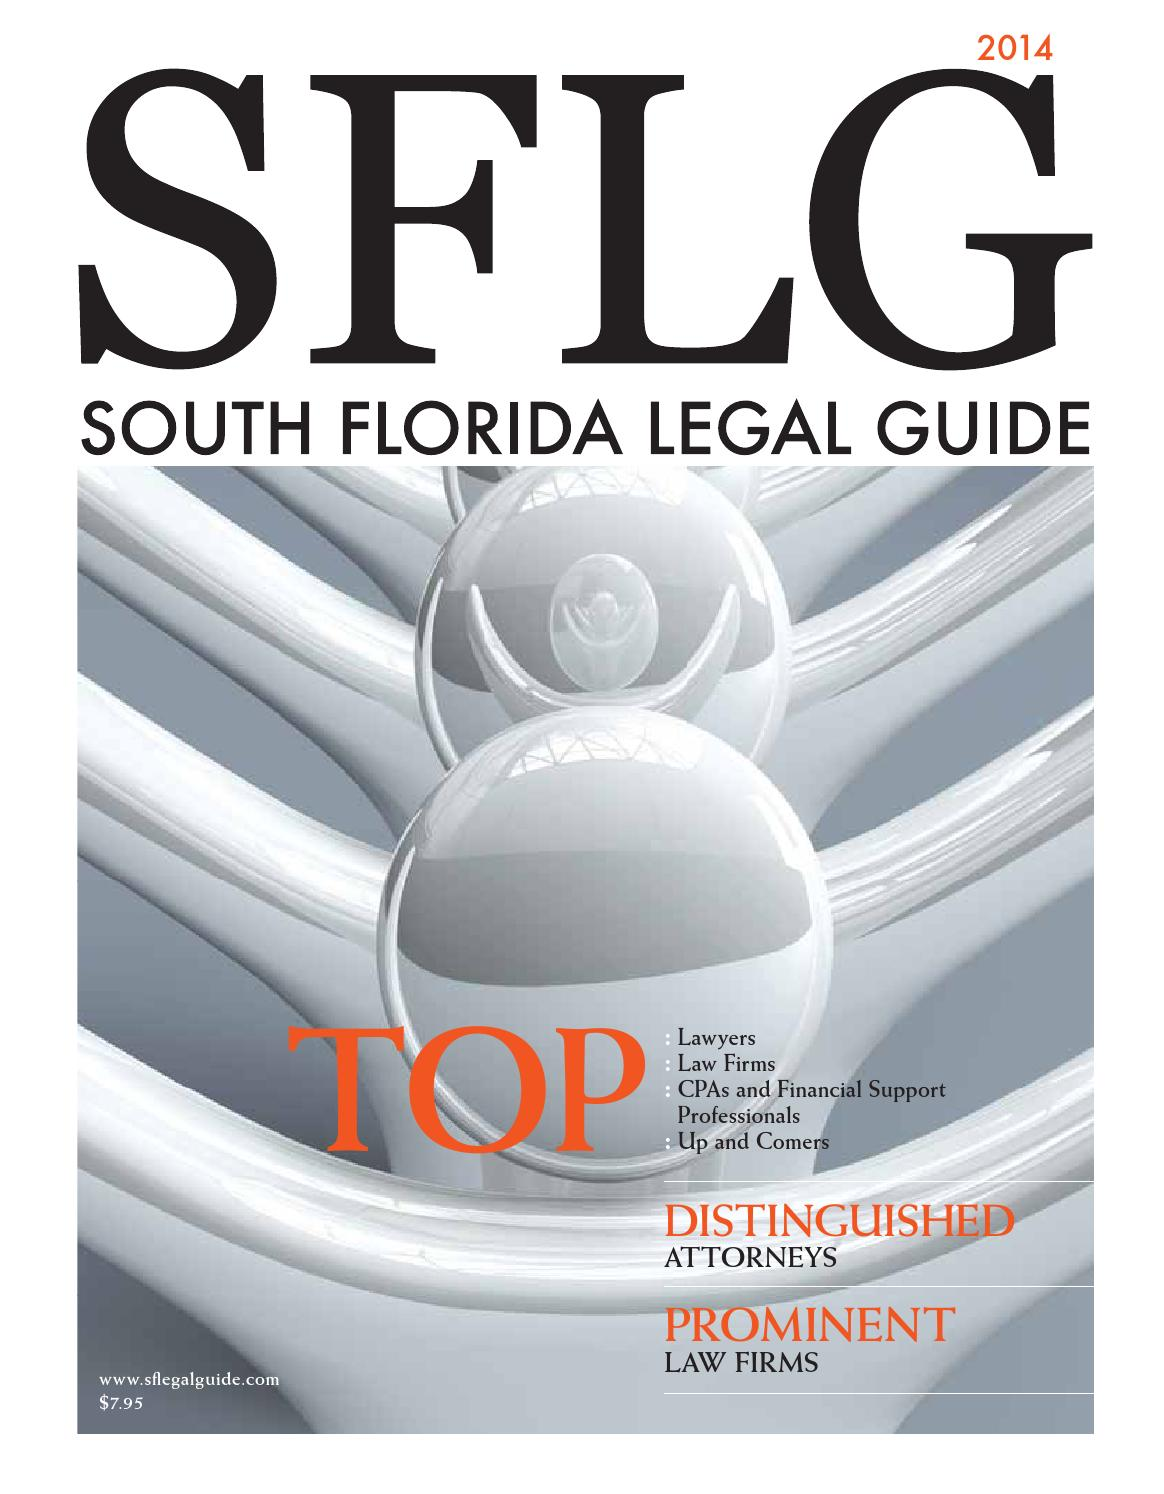 South Florida Legal Guide 2014 Edition by South Florida Legal Guide - issuu